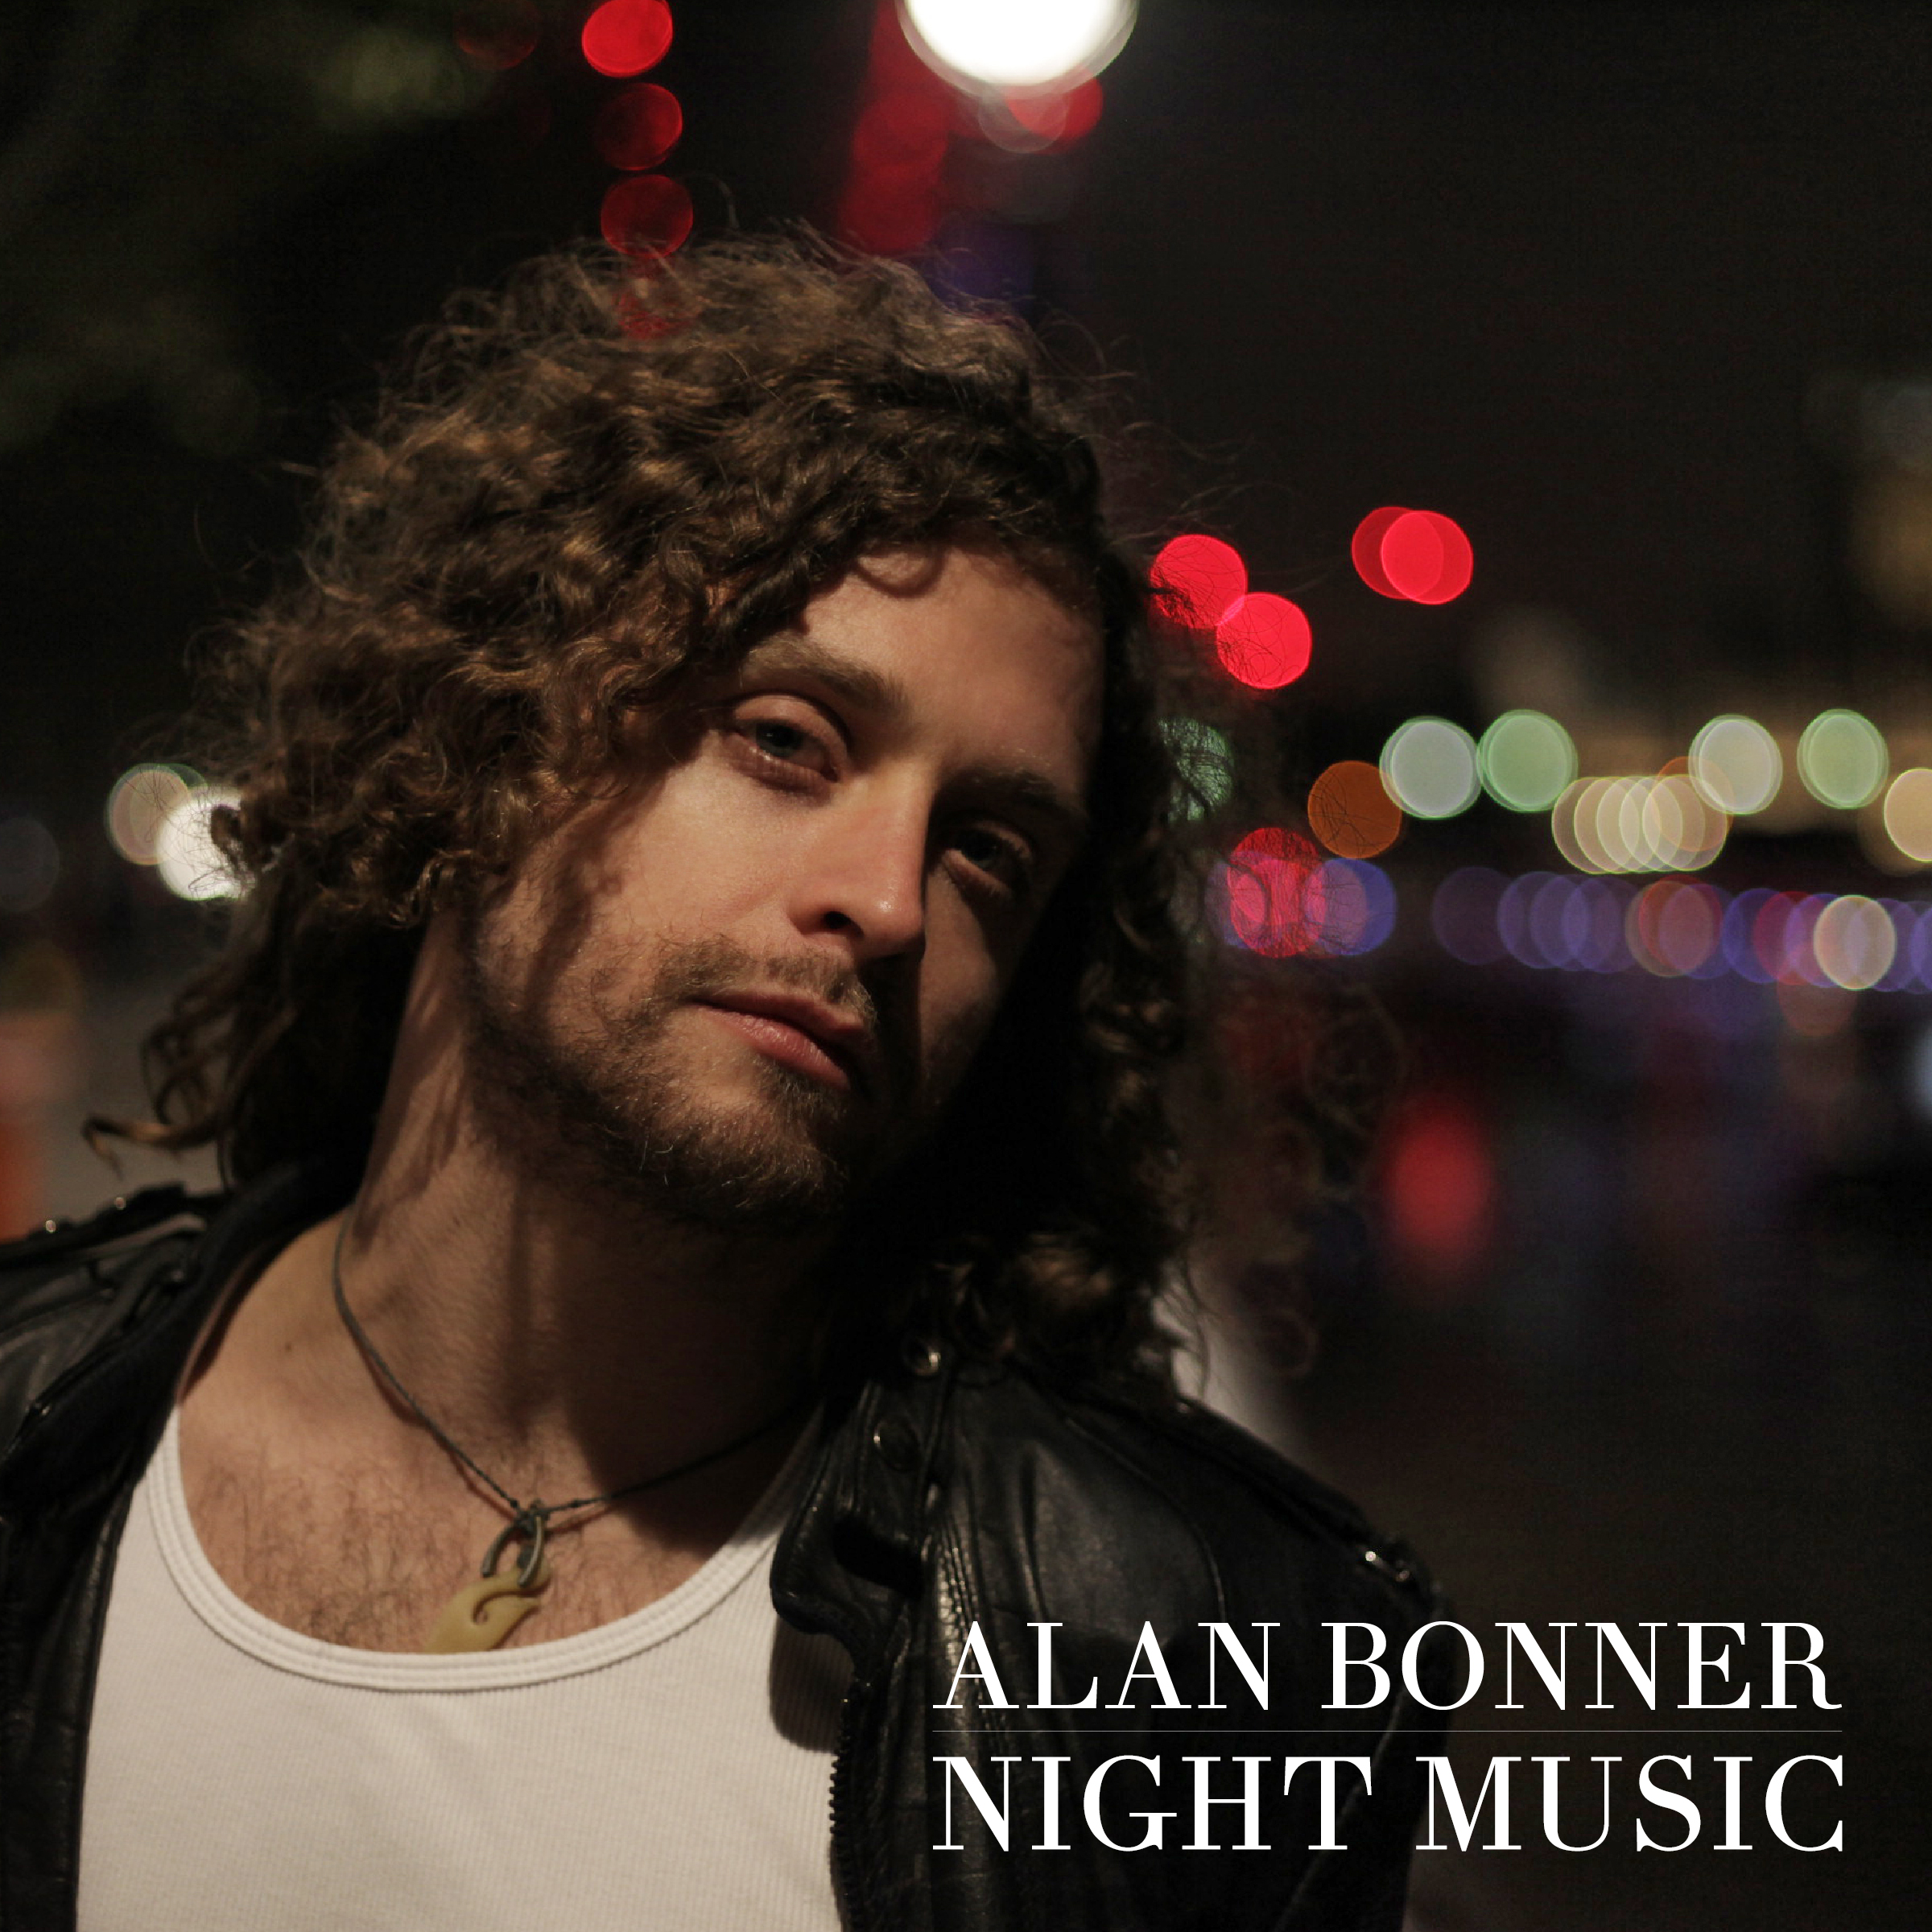 Alan bonner night music album cover